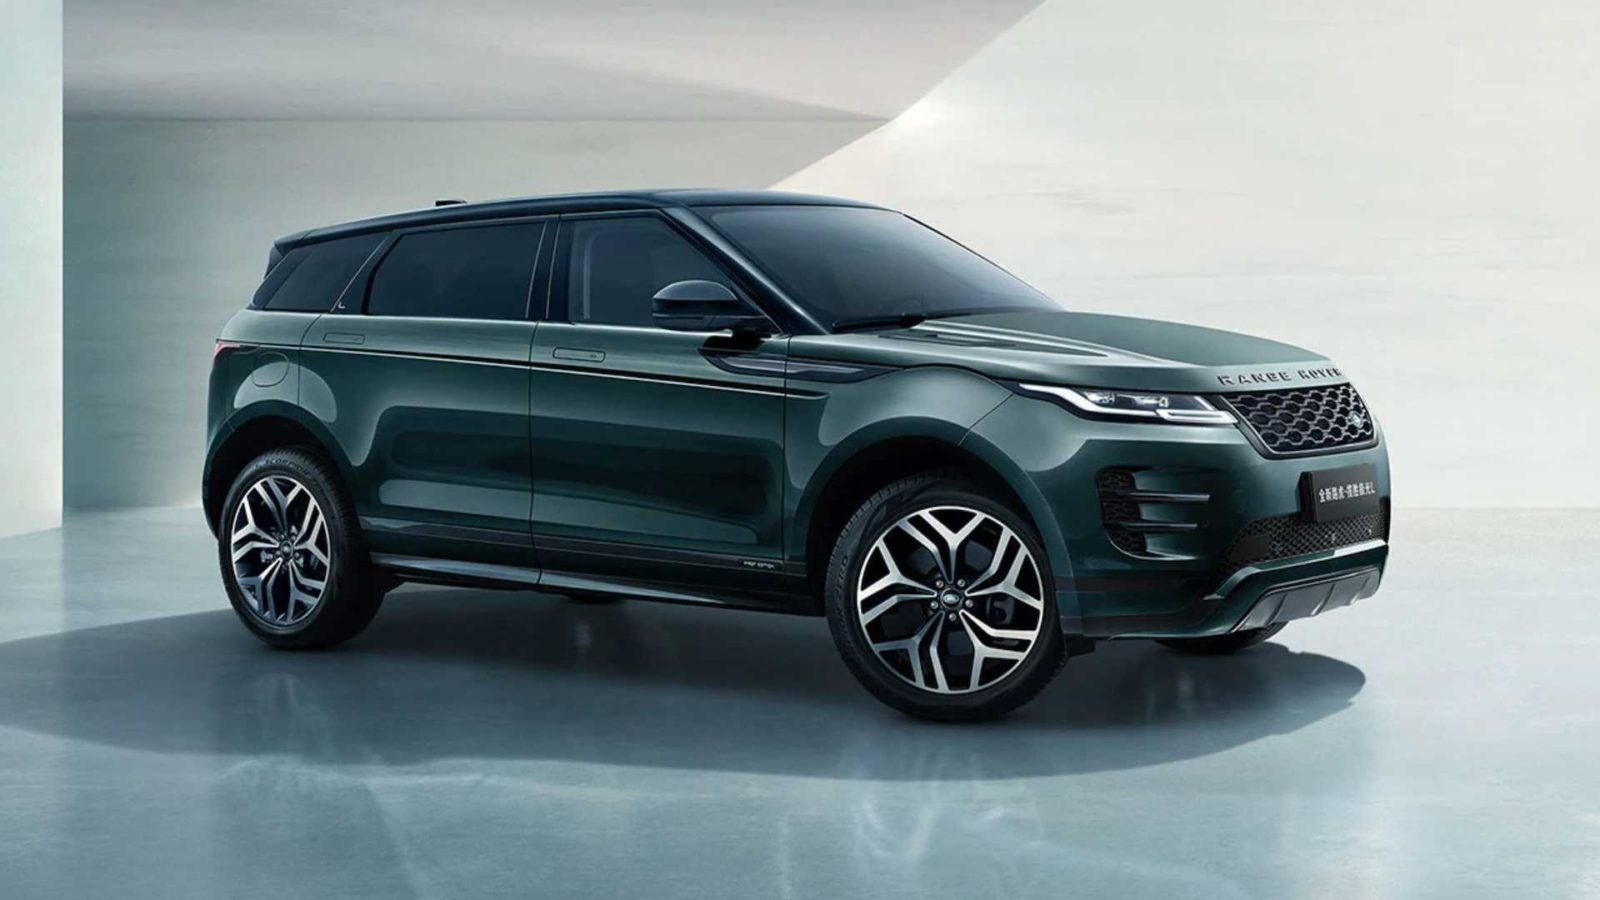 chinese-2022-range-rover-evoque-l-revealed-with-two-row-seating